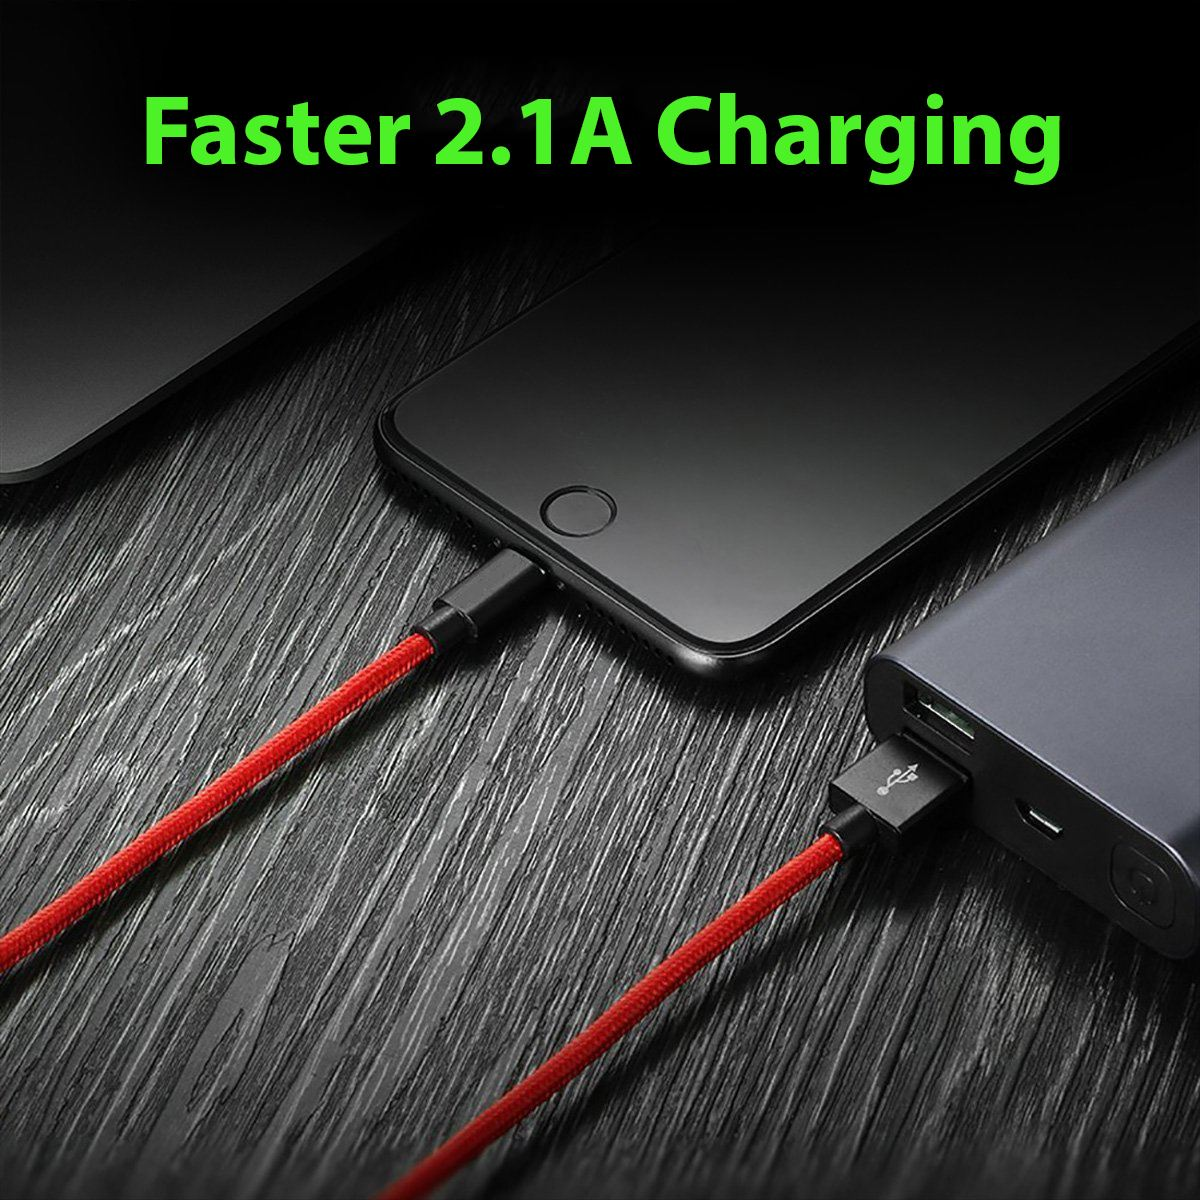 1M-2M-3M-Heavy-Duty-Braided-Lightning-Charger-Cable-For-iPhone-5-6-7-8-X-iPad thumbnail 55